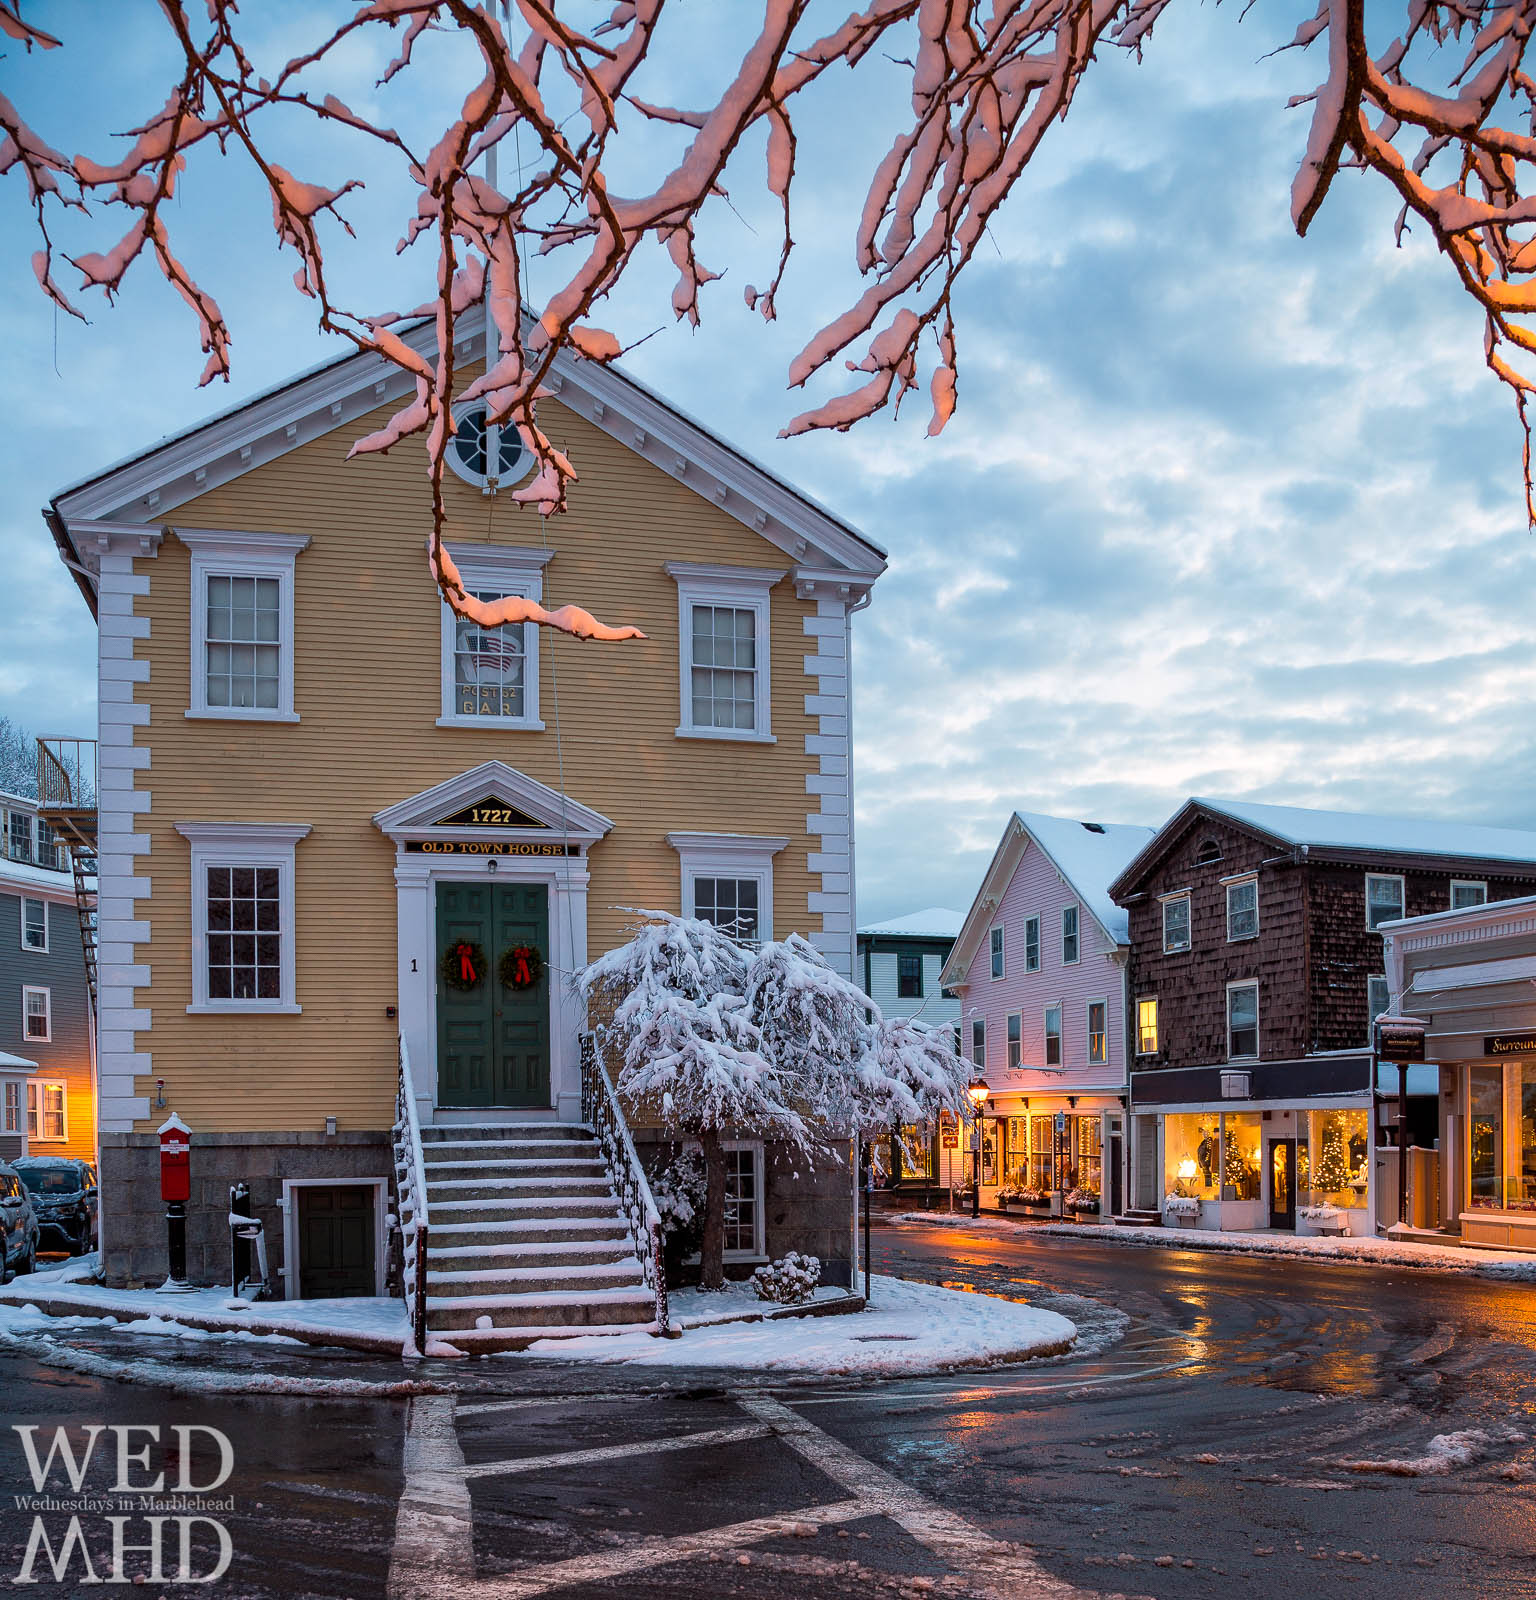 Snowy branches frame Old Town House on this morning in historic downtown Marblehead